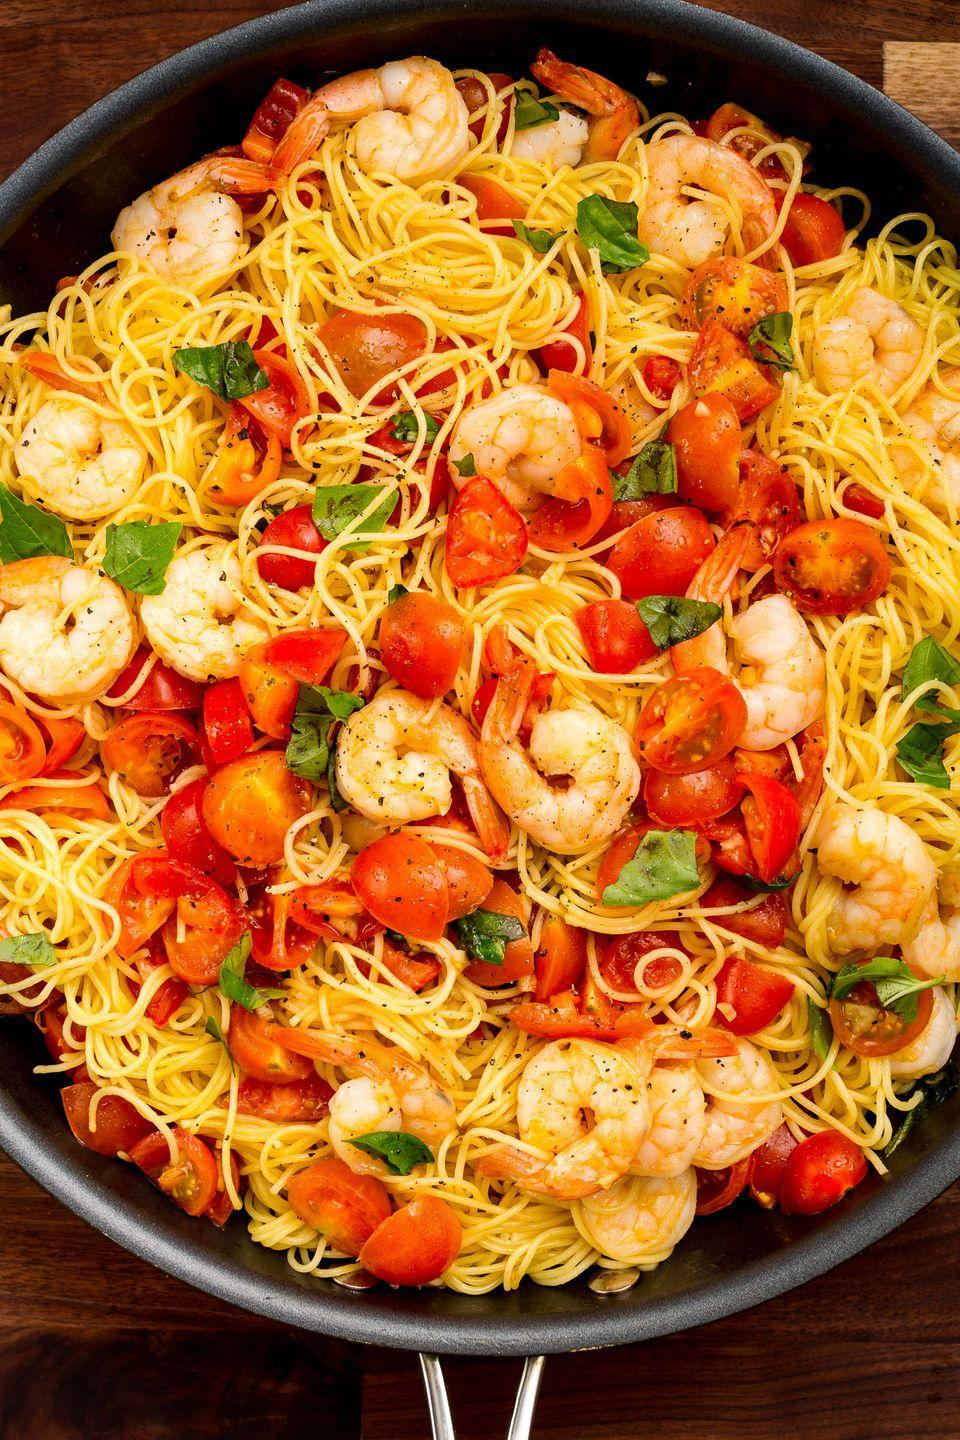 "<p>You're going to be making this satisfying shrimp pasta on repeat.</p><p>Get the recipe from <a href=""https://www.delish.com/cooking/recipe-ideas/recipes/a47440/bruschetta-shrimp-pasta-recipe/"" rel=""nofollow noopener"" target=""_blank"" data-ylk=""slk:Delish"" class=""link rapid-noclick-resp"">Delish</a>. </p>"